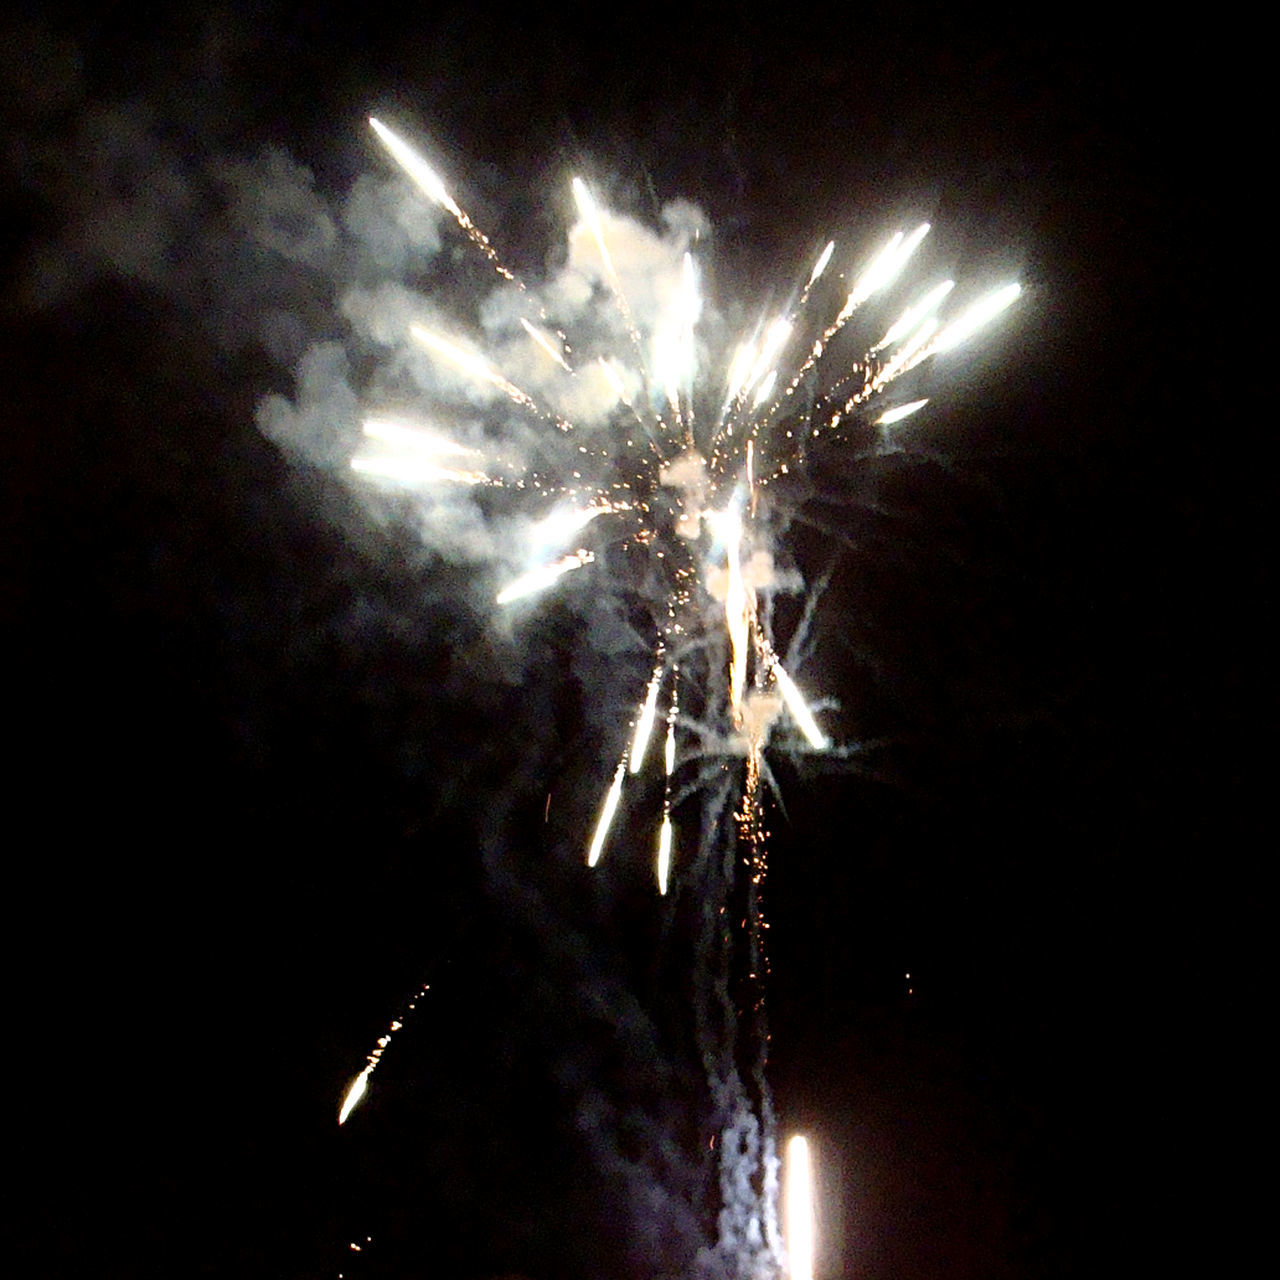 night, firework display, celebration, firework - man made object, exploding, event, arts culture and entertainment, long exposure, glowing, low angle view, illuminated, motion, sky, no people, outdoors, firework, blurred motion